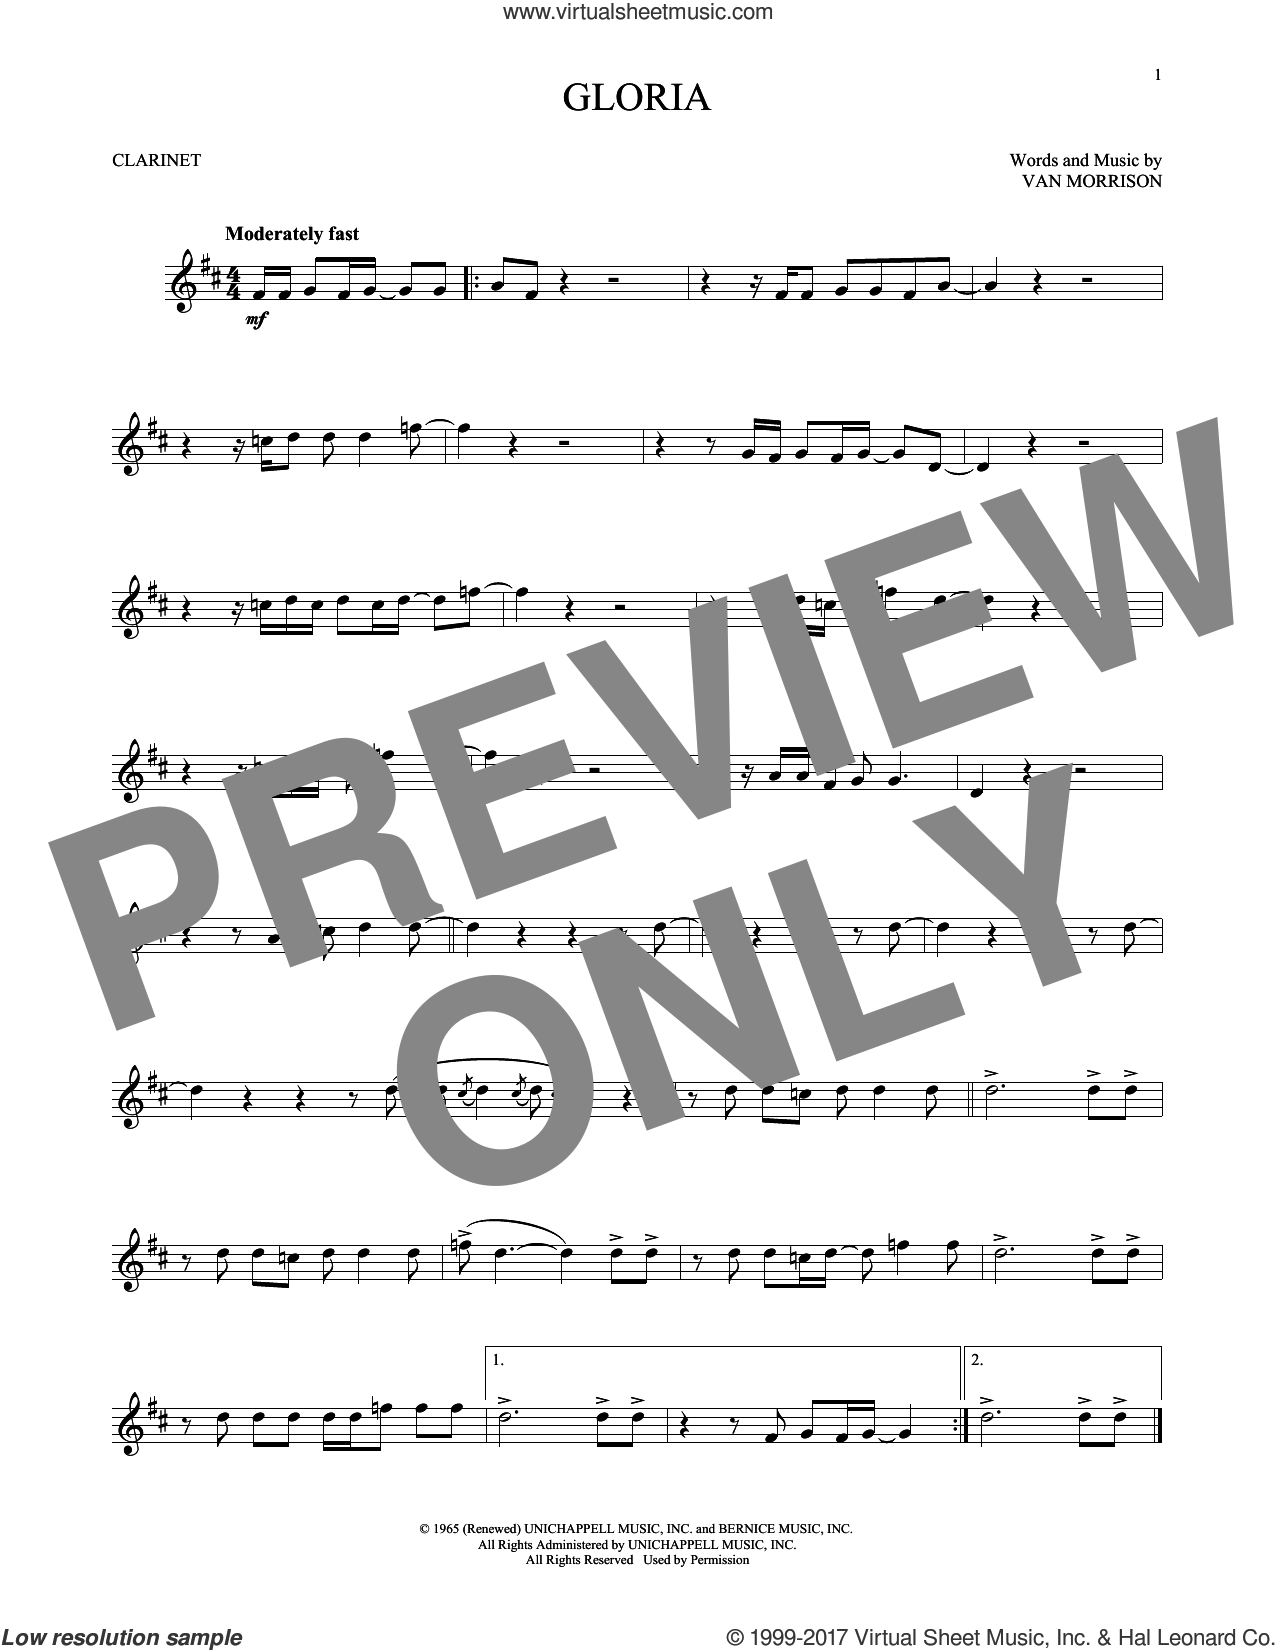 Gloria sheet music for clarinet solo by Van Morrison, intermediate skill level